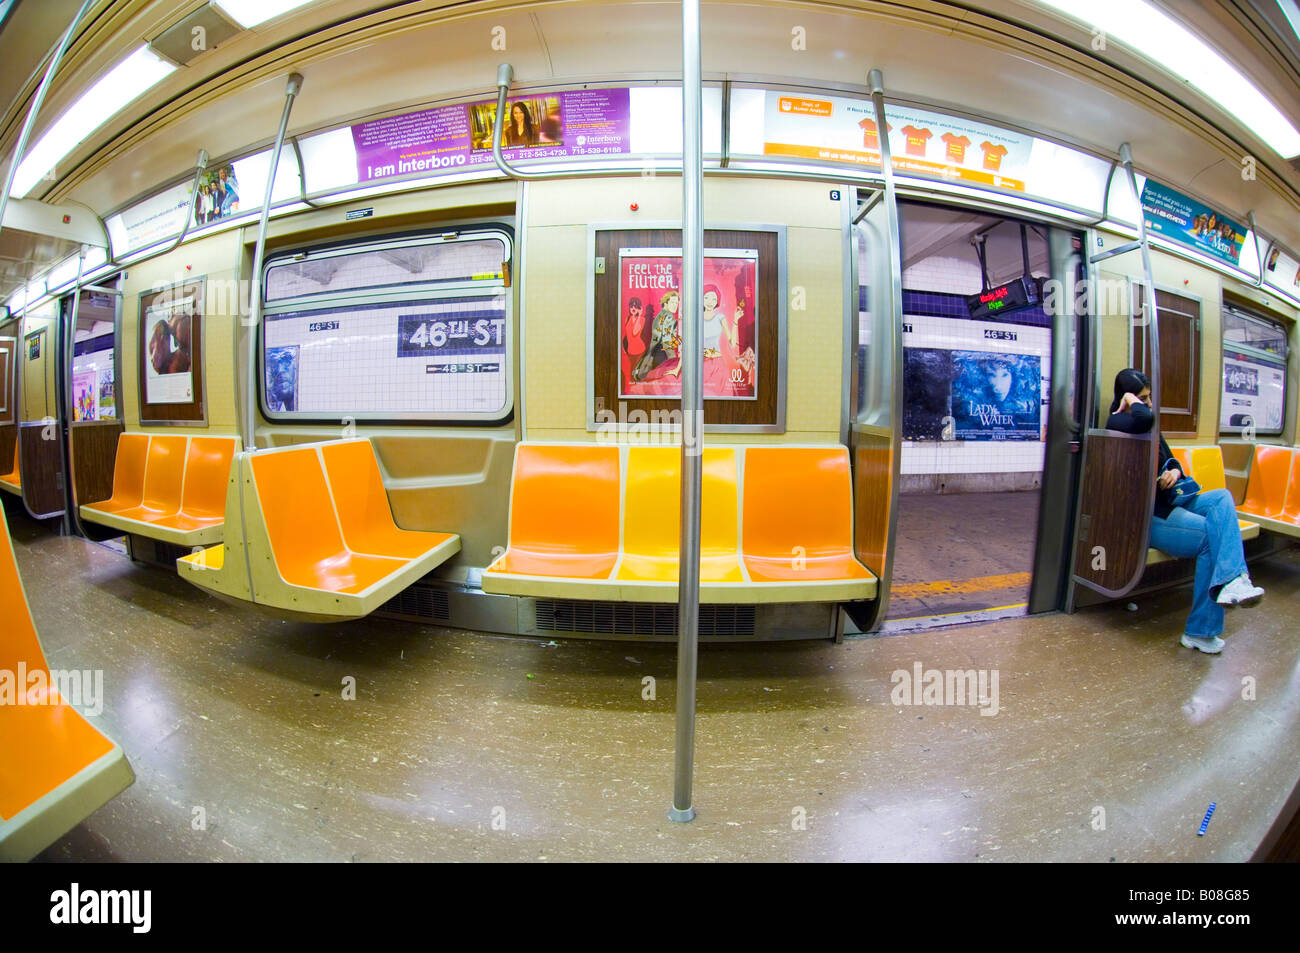 fisheye view of new york subway car interior stock photo royalty free image 17398757 alamy. Black Bedroom Furniture Sets. Home Design Ideas